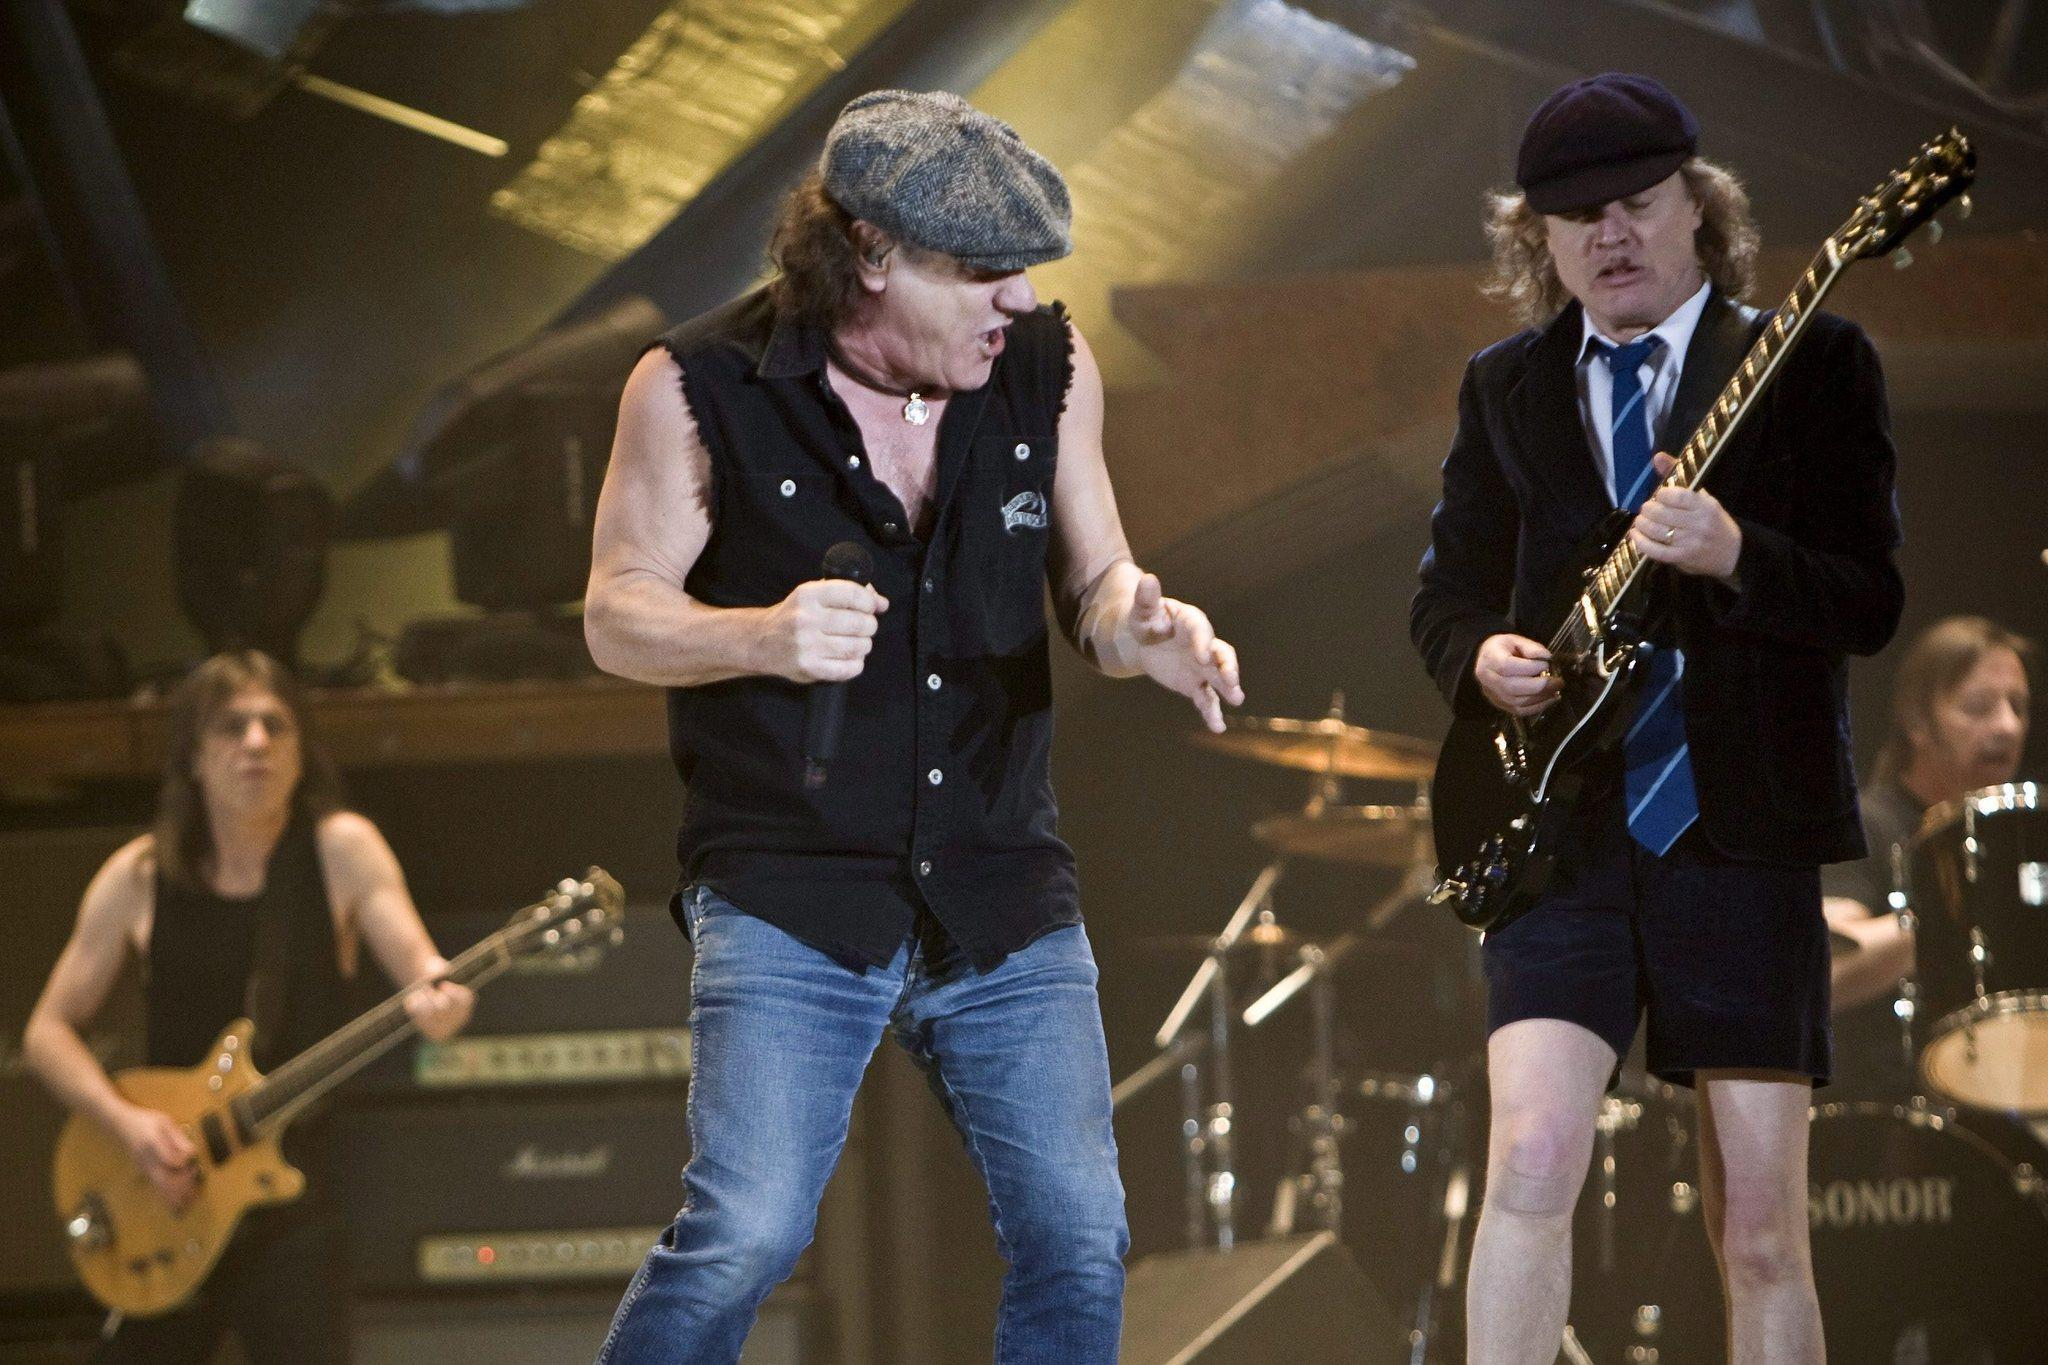 AC/DC lead singer Brian Johnson, center, Scottish guitarist Malcom Young, left, and his brother Angus Young, shown performing in Switzerland in 2009. Johnson has dismissed reports that the group is disbanding because of Malcolm Young's health.